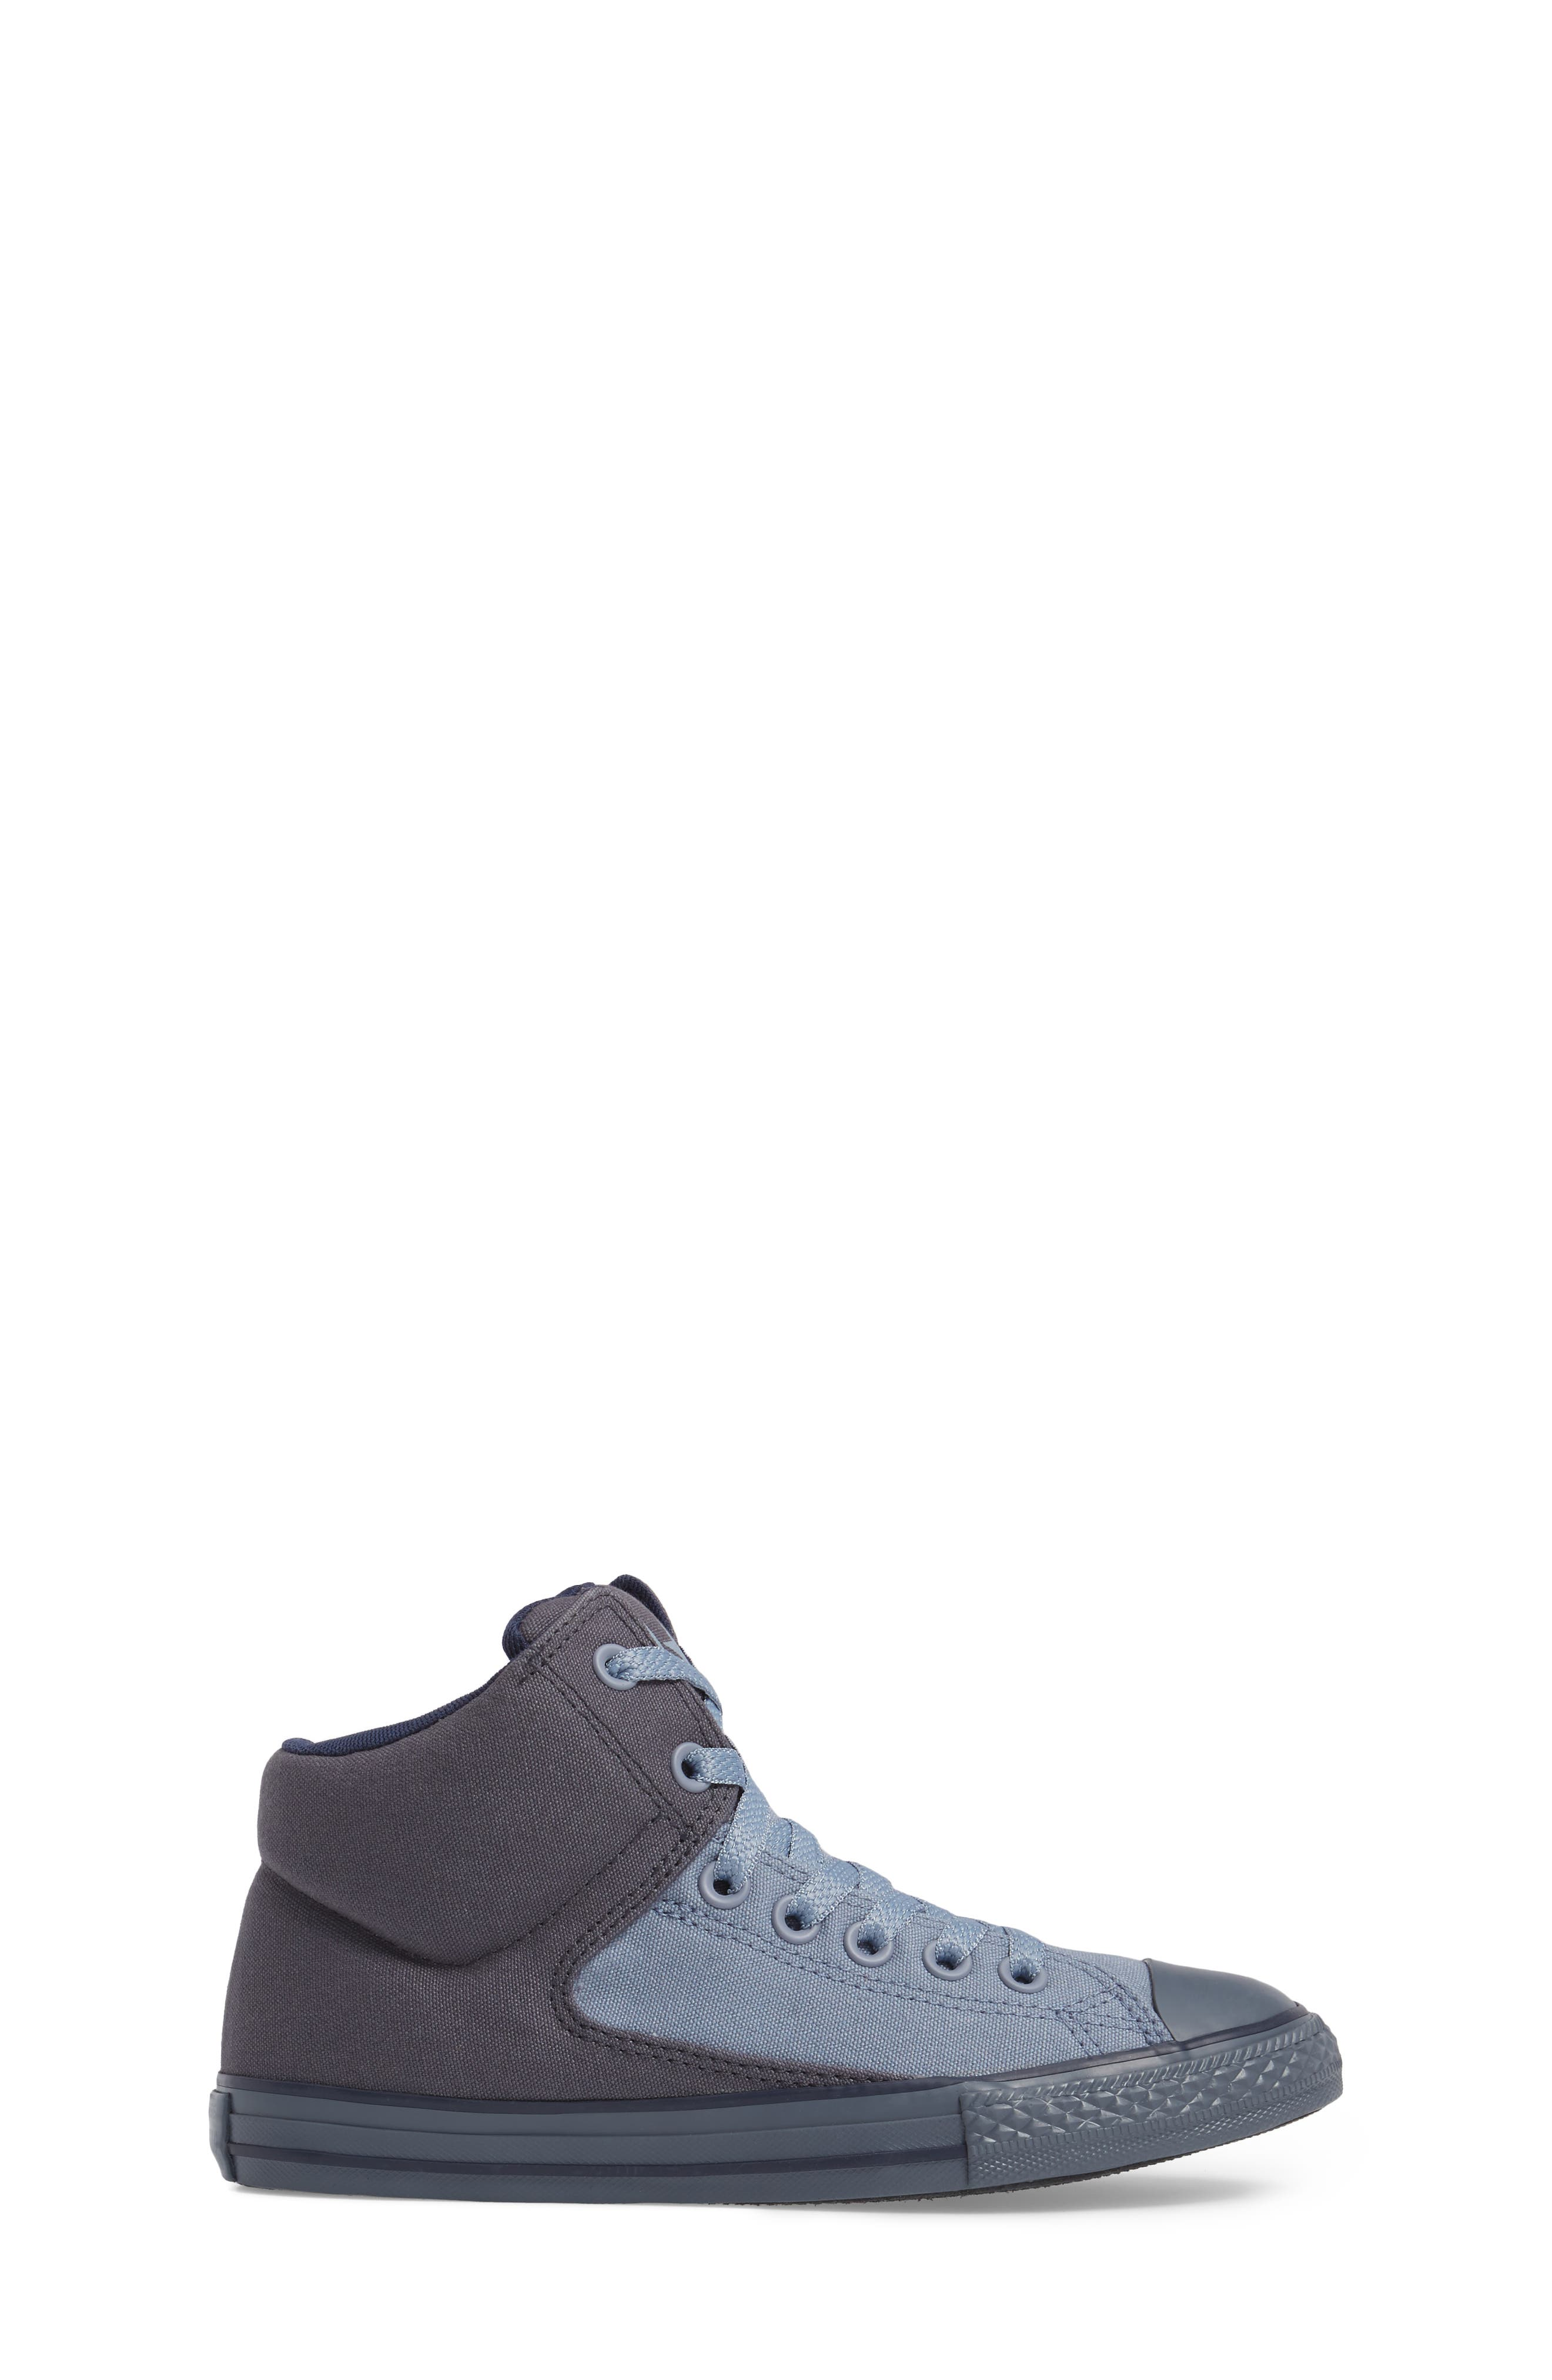 Chuck Taylor<sup>®</sup> All Star<sup>®</sup> High Street High Top Sneaker,                             Alternate thumbnail 3, color,                             400